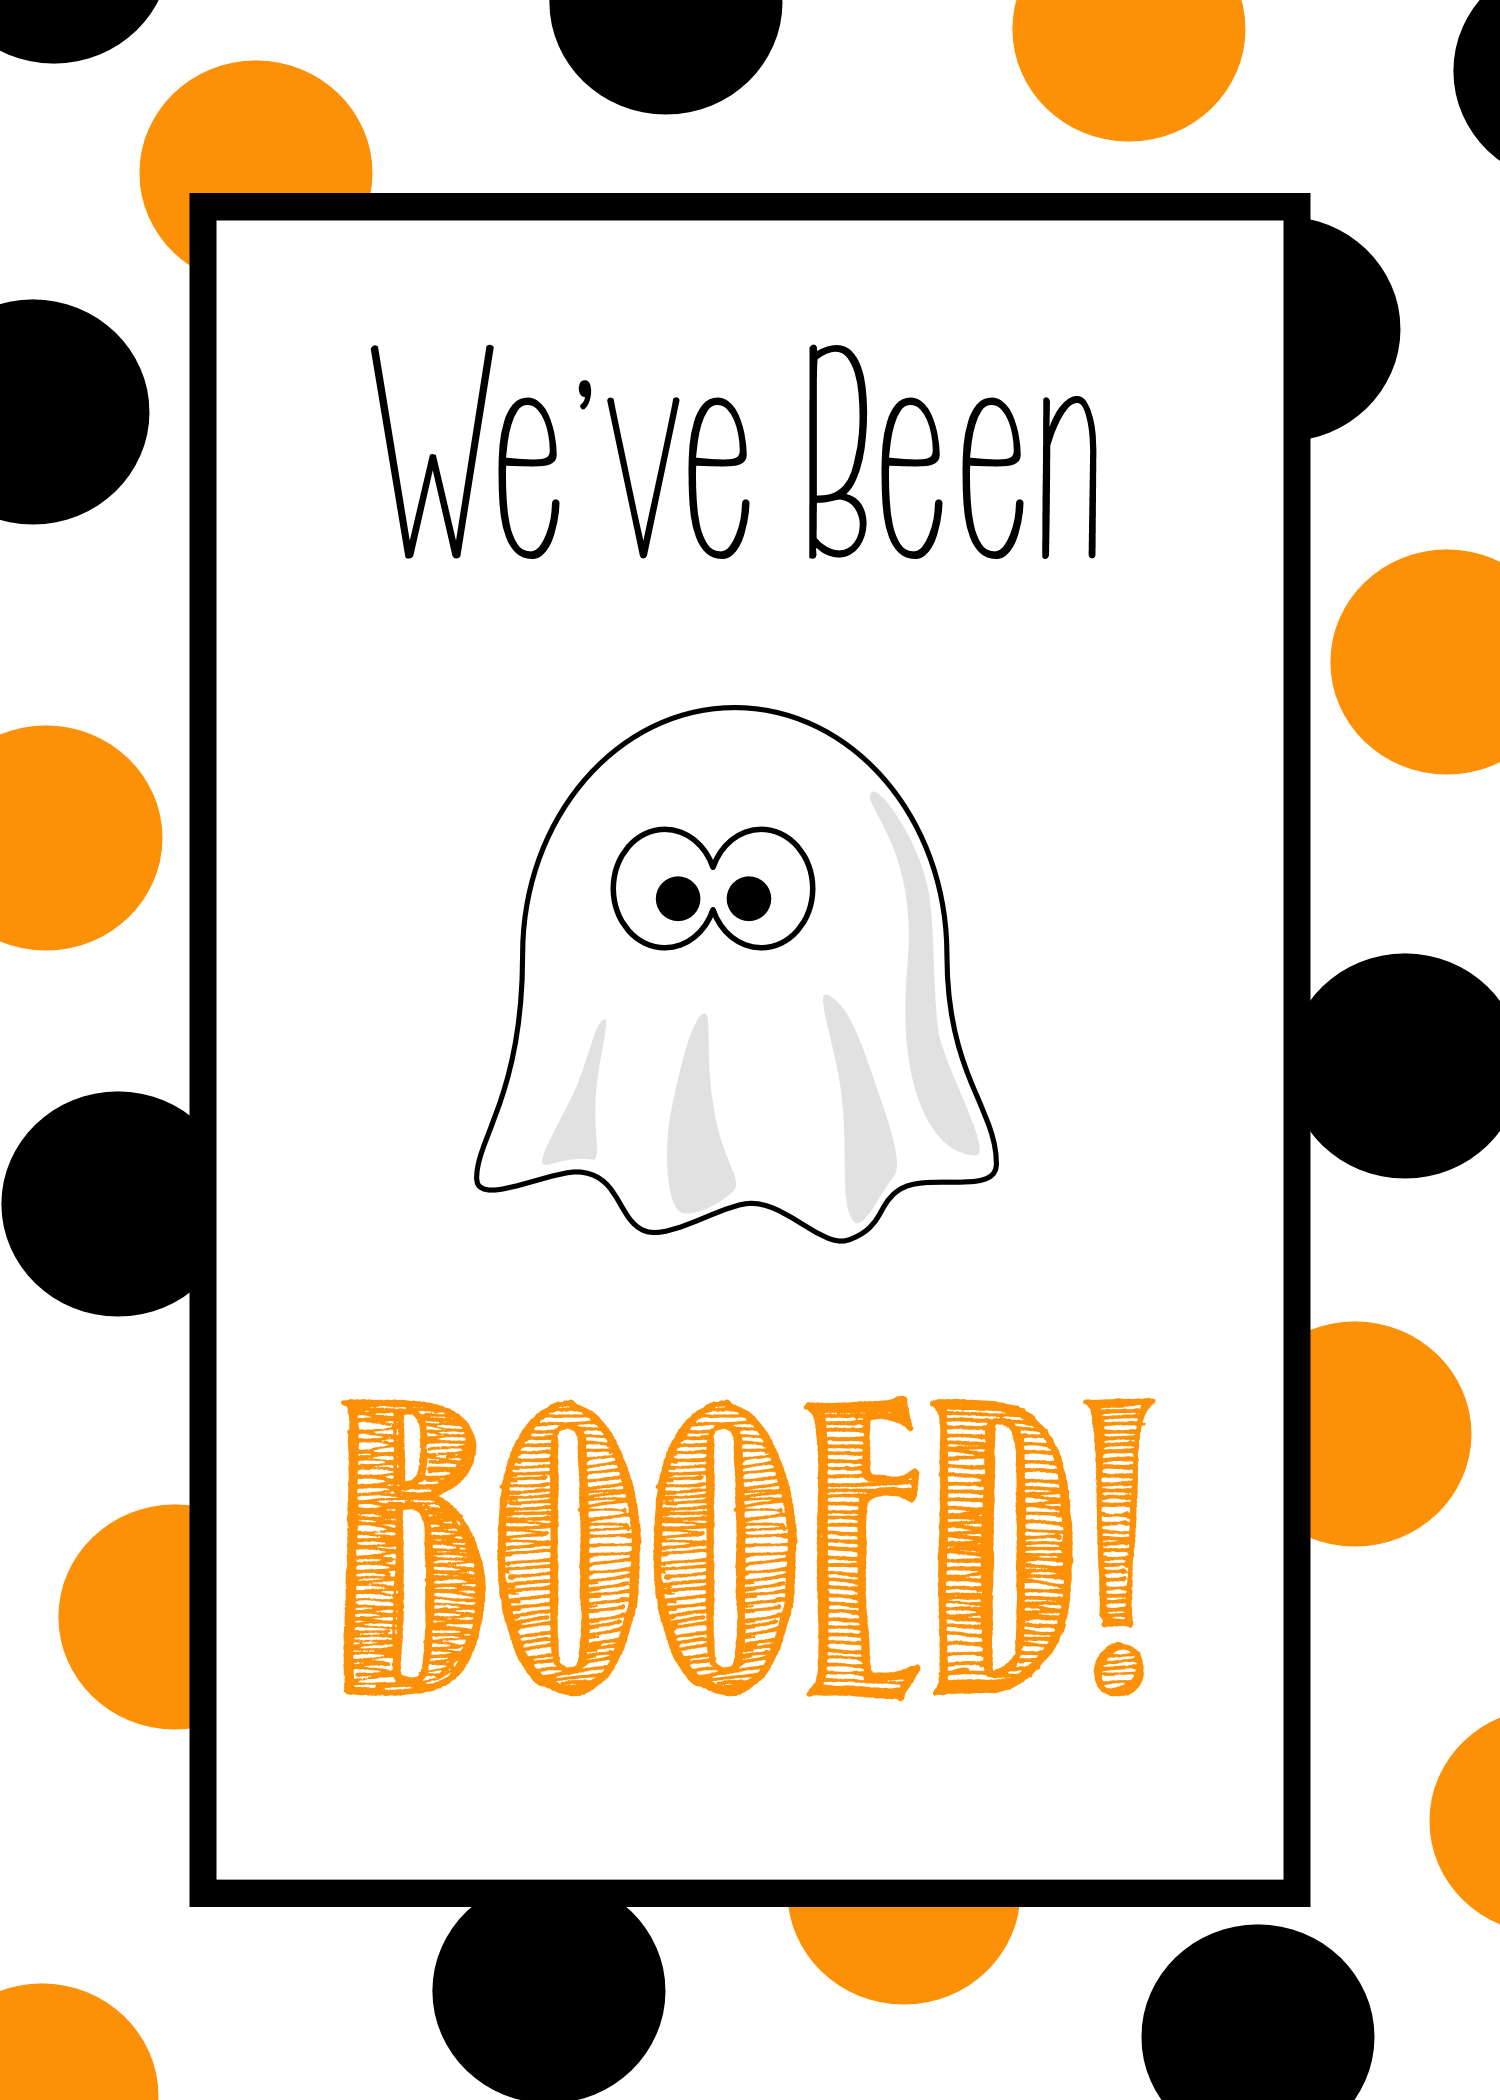 photo regarding You've Been Booed Free Printable known as Youve Been Booed - Lovable Free of charge Printable Tags Halloween